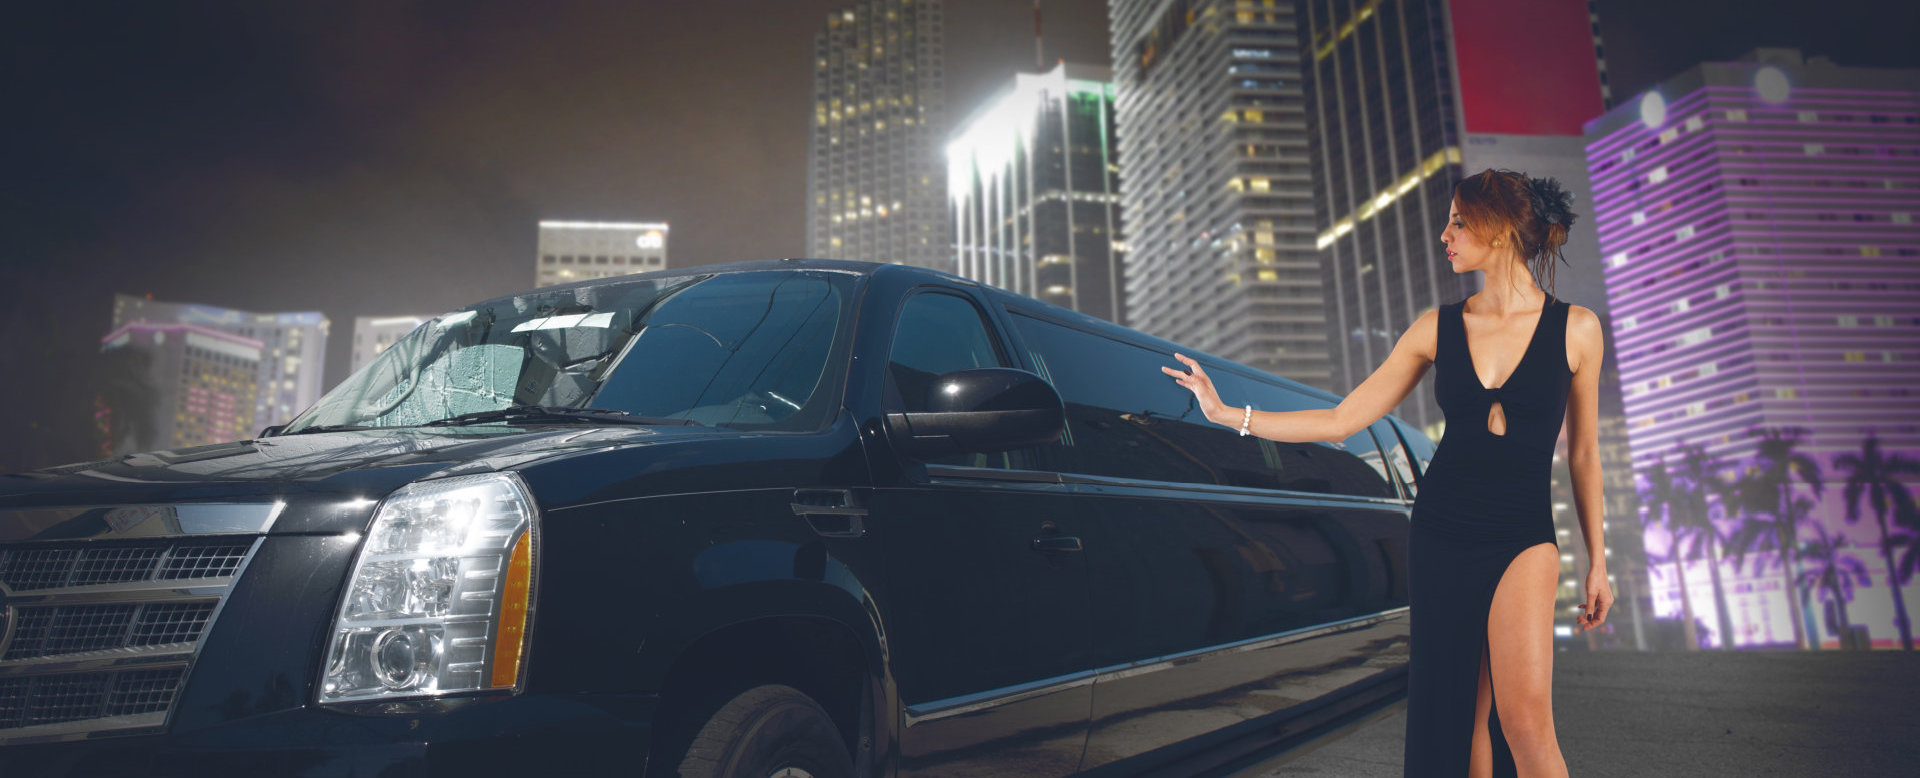 woman and limousine car